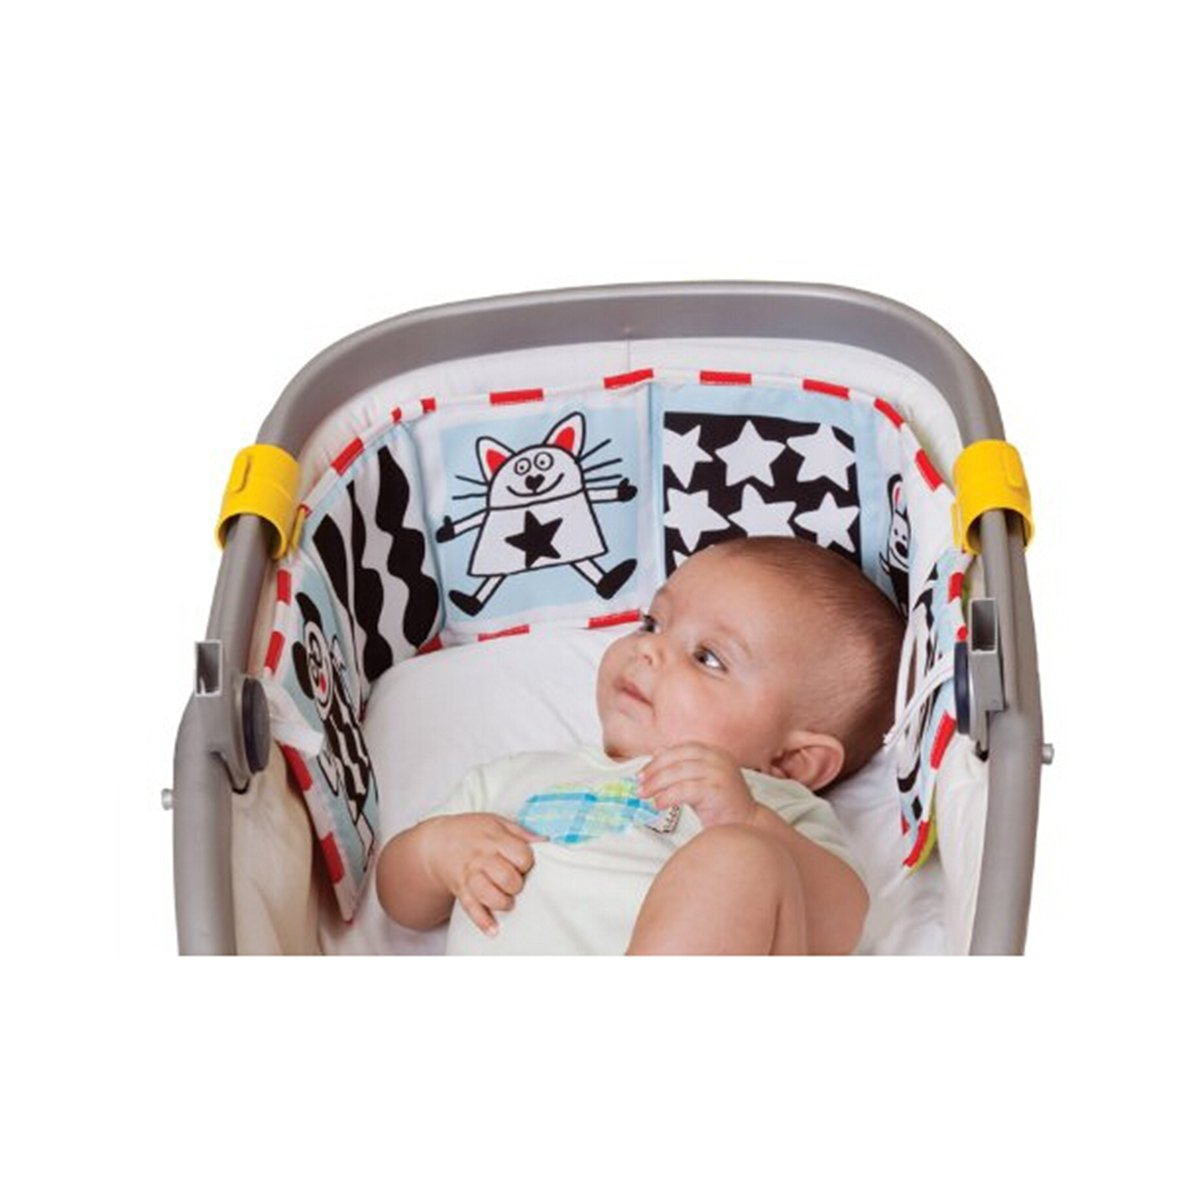 YeahiBaby Clip-on Pram Book for Baby Stroller Pram Carriage and Crib Entertainment and Development (Ladybug Pattern) by YeahiBaby (Image #6)